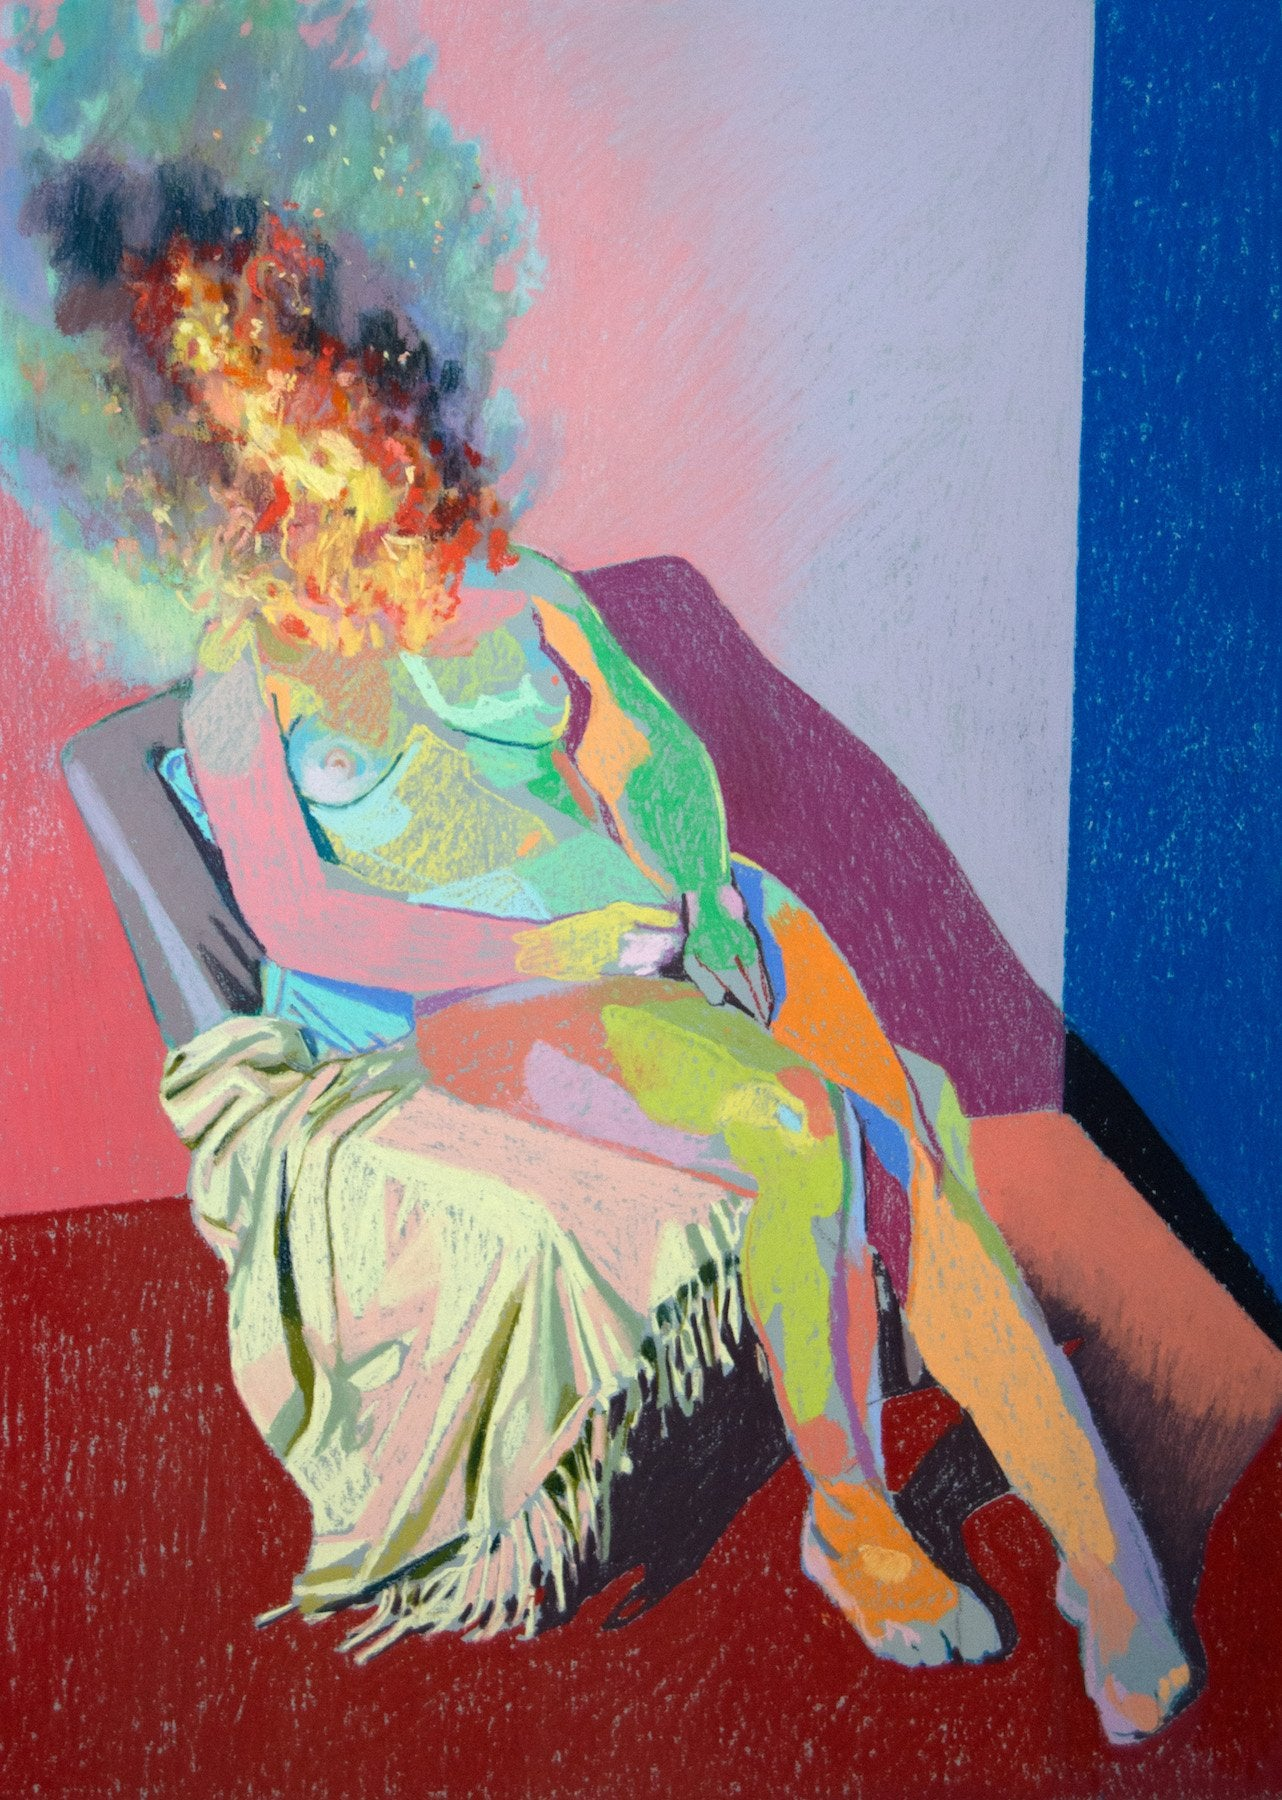 Nude on fire with red ground & blue wall | Hester Finch | Original Artwork | Partnership Editions